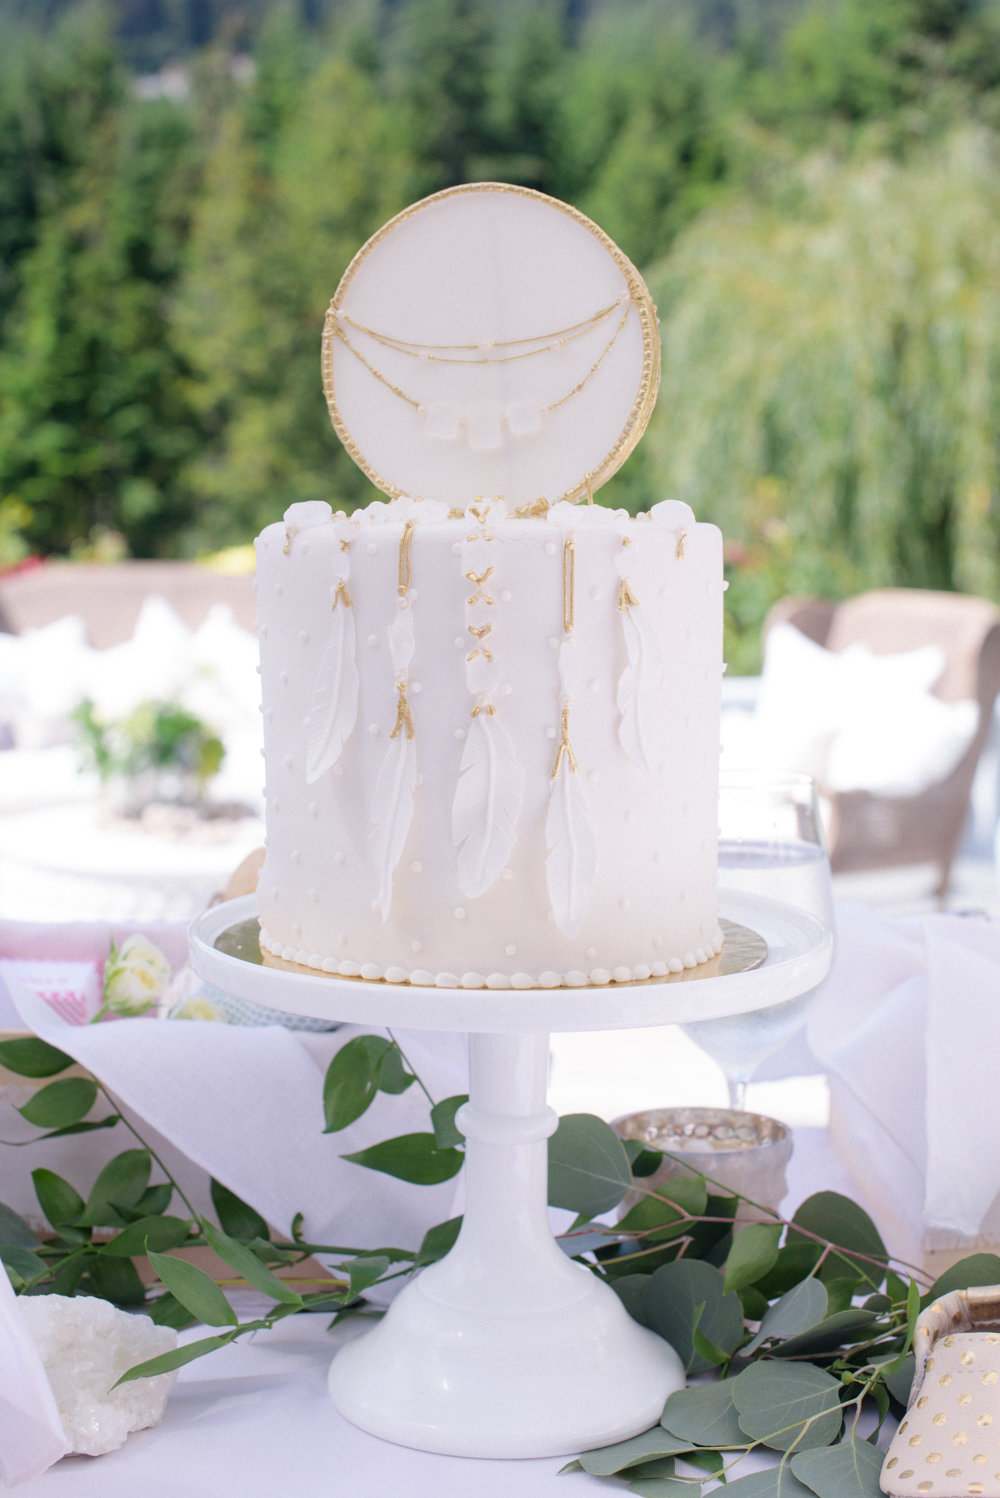 Jillian Harris Baby Shower Monika Hibbs Mini Cake